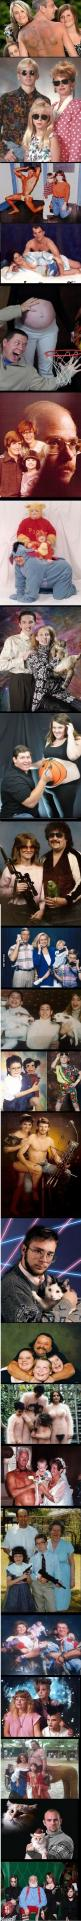 Just some awkward family photos...these never get old: Family Pictures, Giggle, Family Photos These, Awkward Family Photos, Awkward Photos, Families, Wtf, People